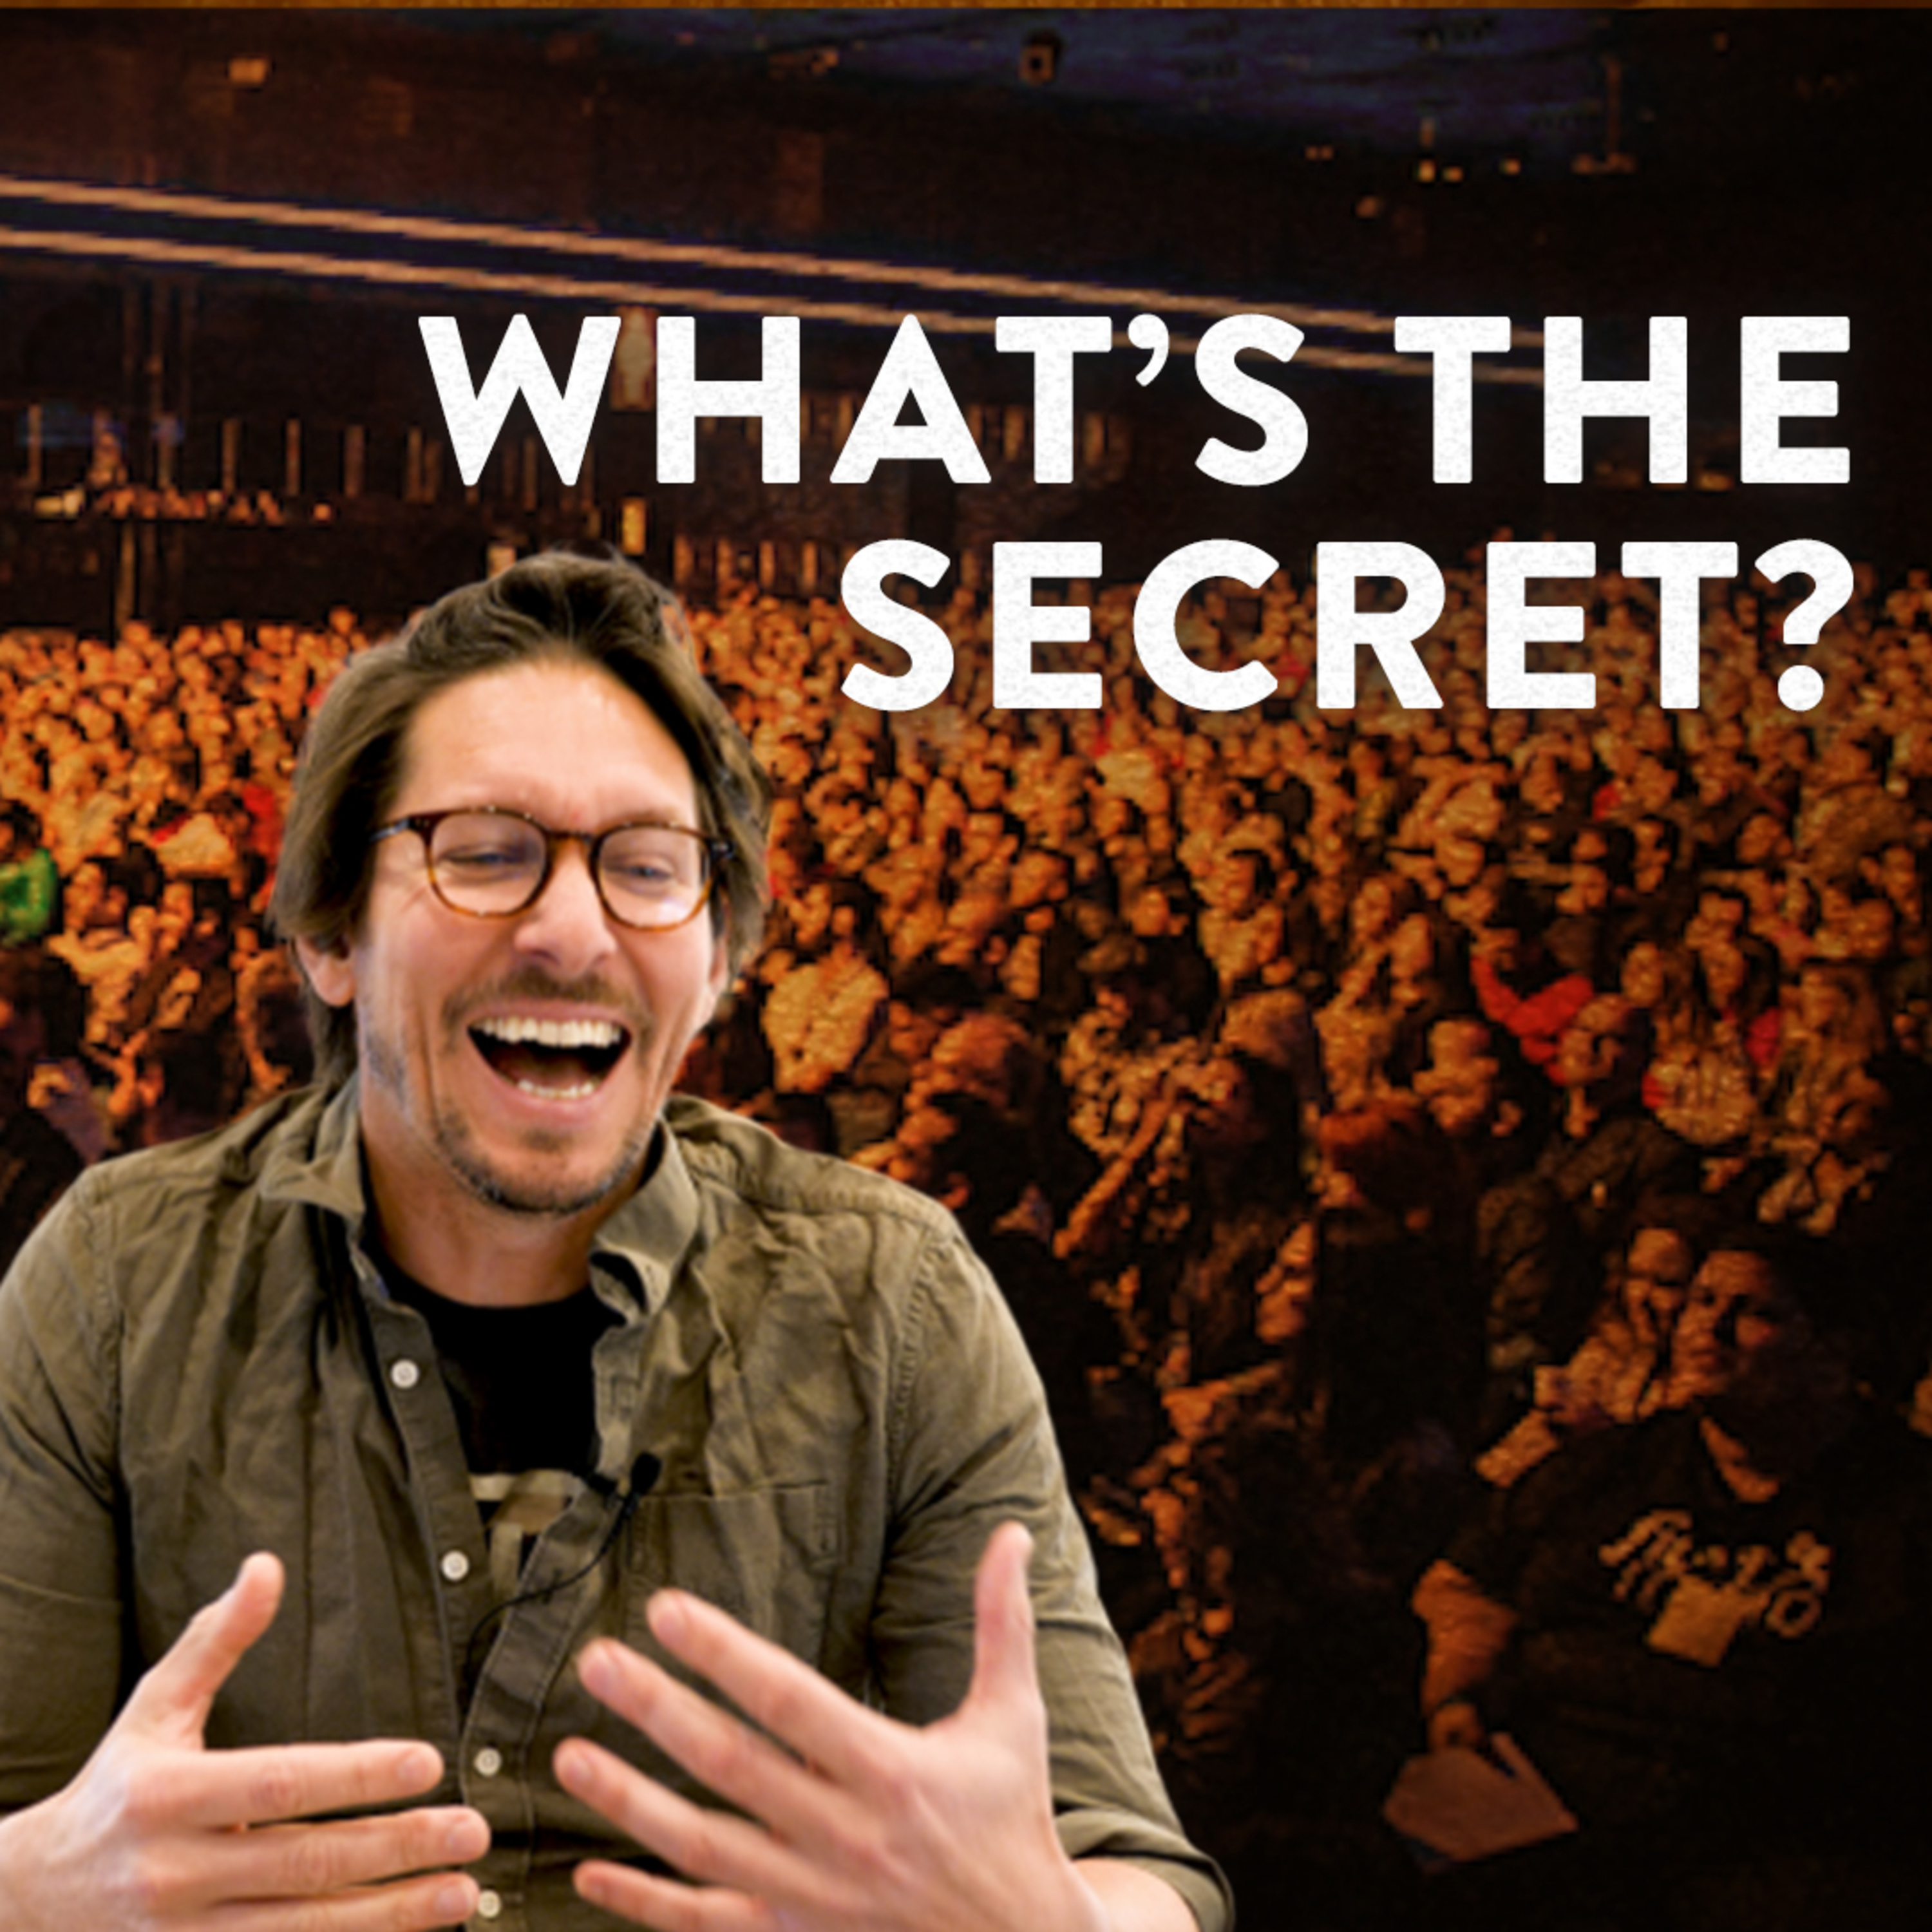 The Secret to Public Speaking (The Good Word)